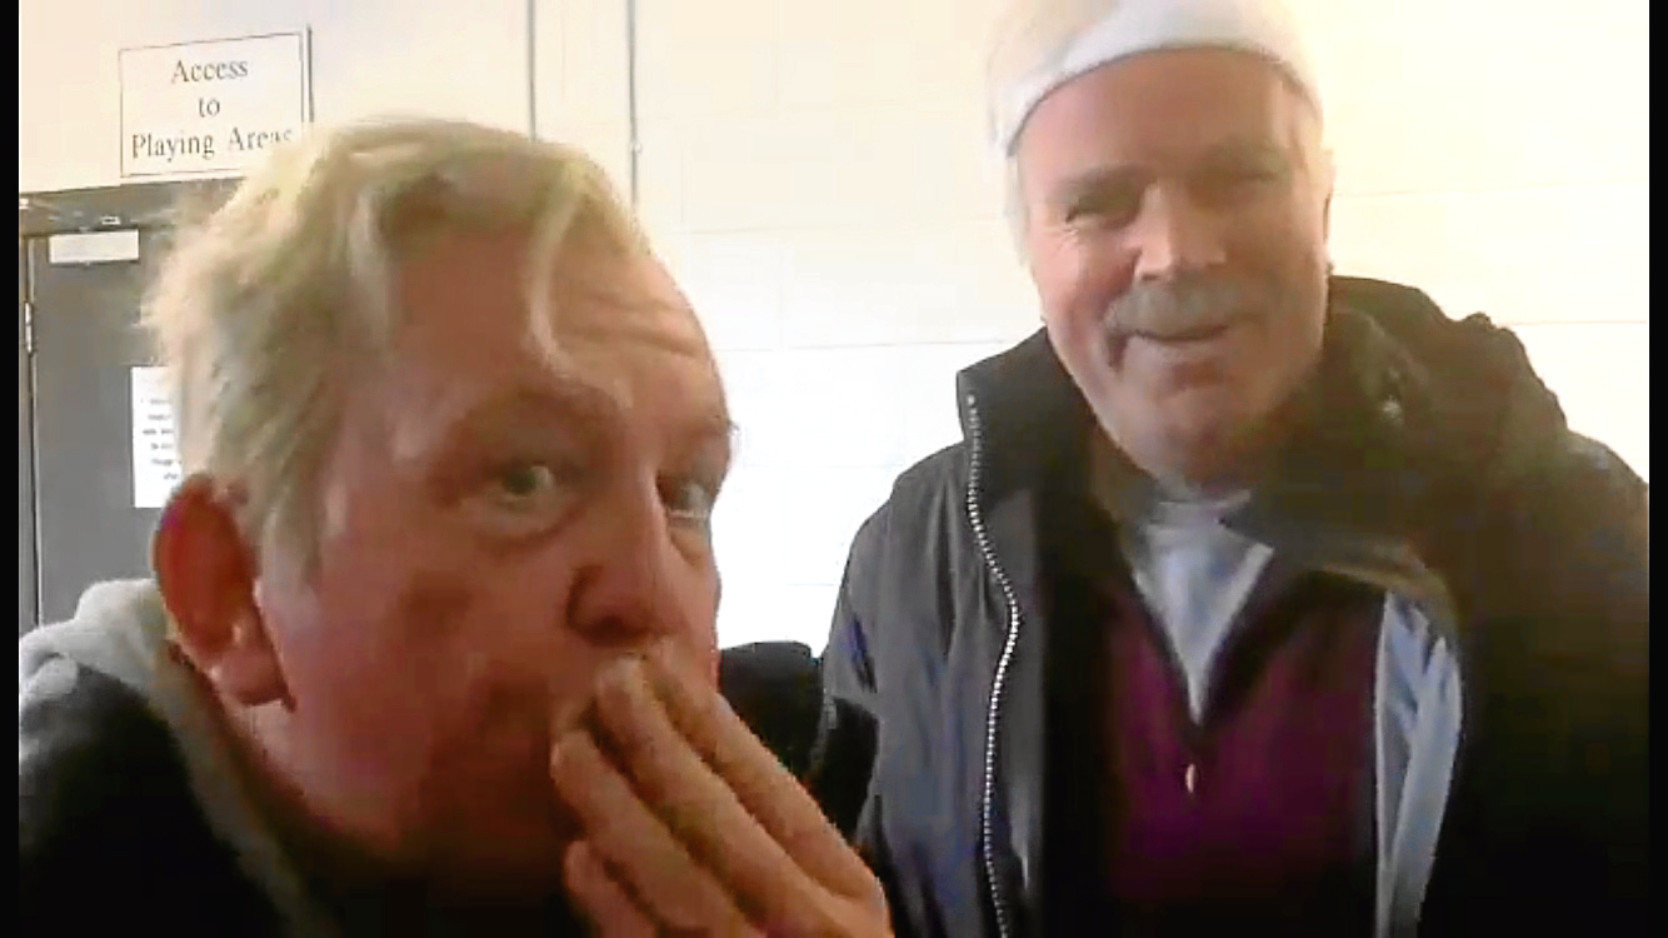 Jack and Victor send their best wishes